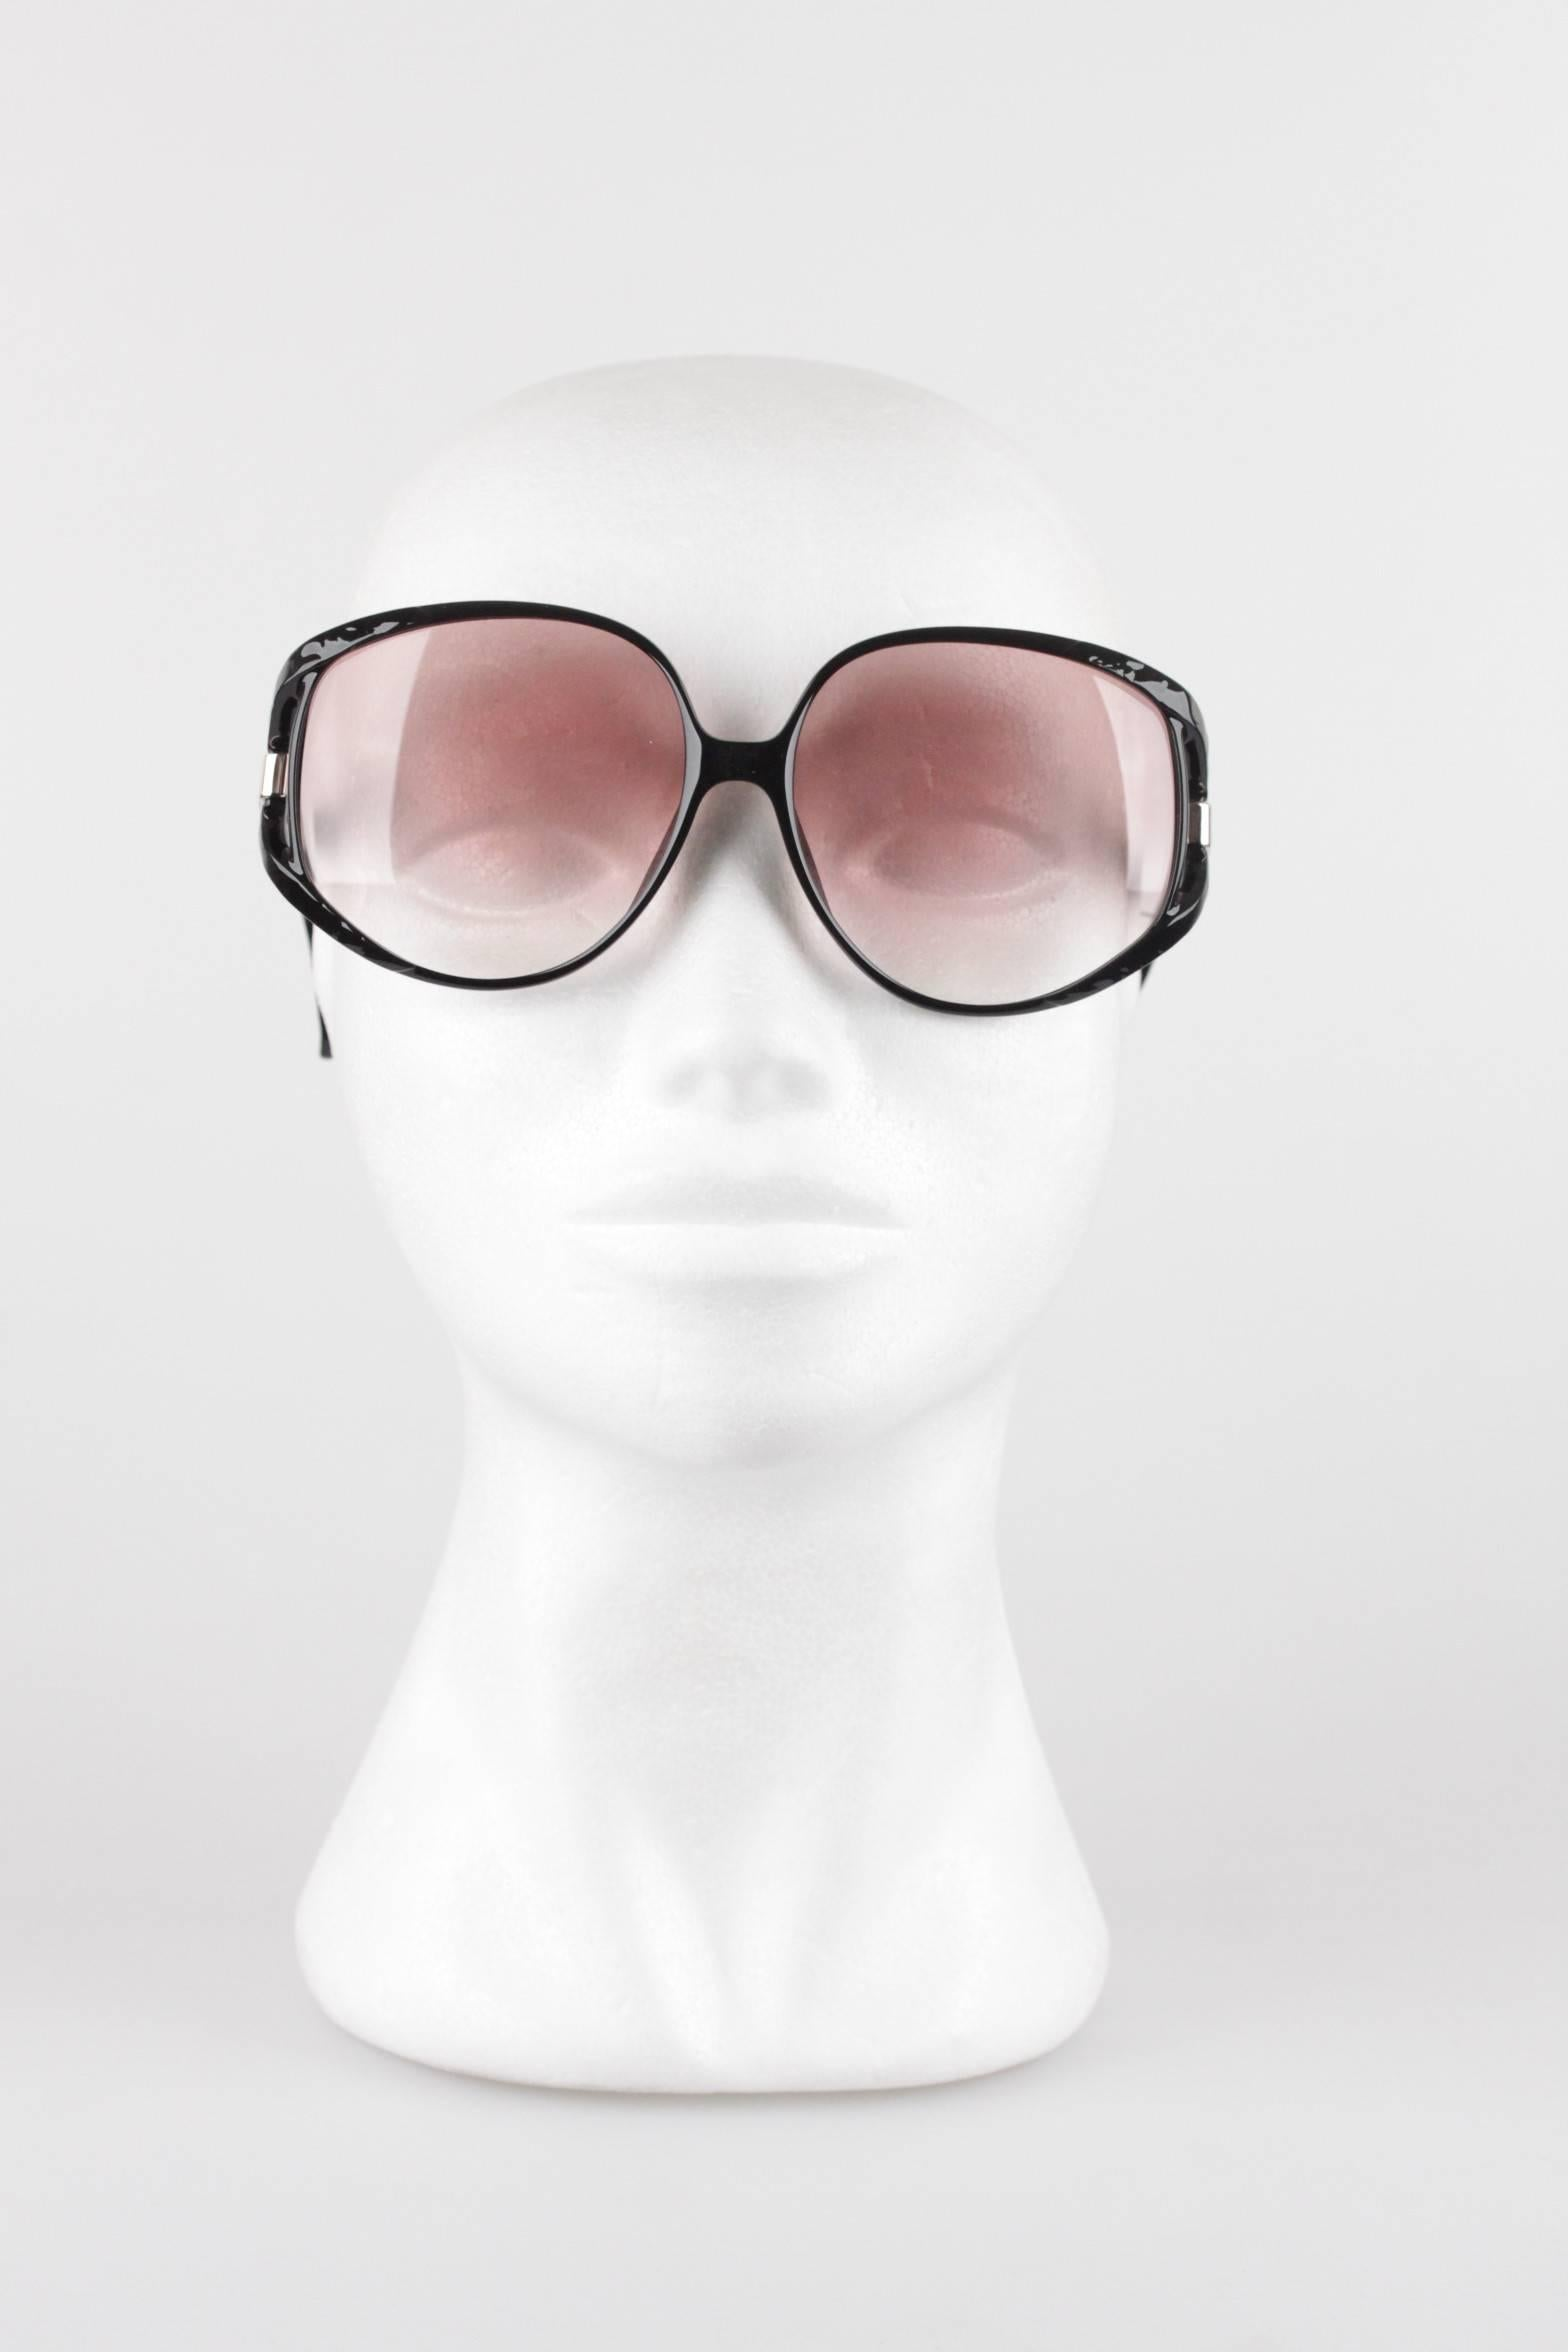 4a6a893eee07 CHRISTIAN DIOR Vintage MINT OVERSIZED Black OPTYL Sunglasses mod. 2320  64 16 at 1stdibs